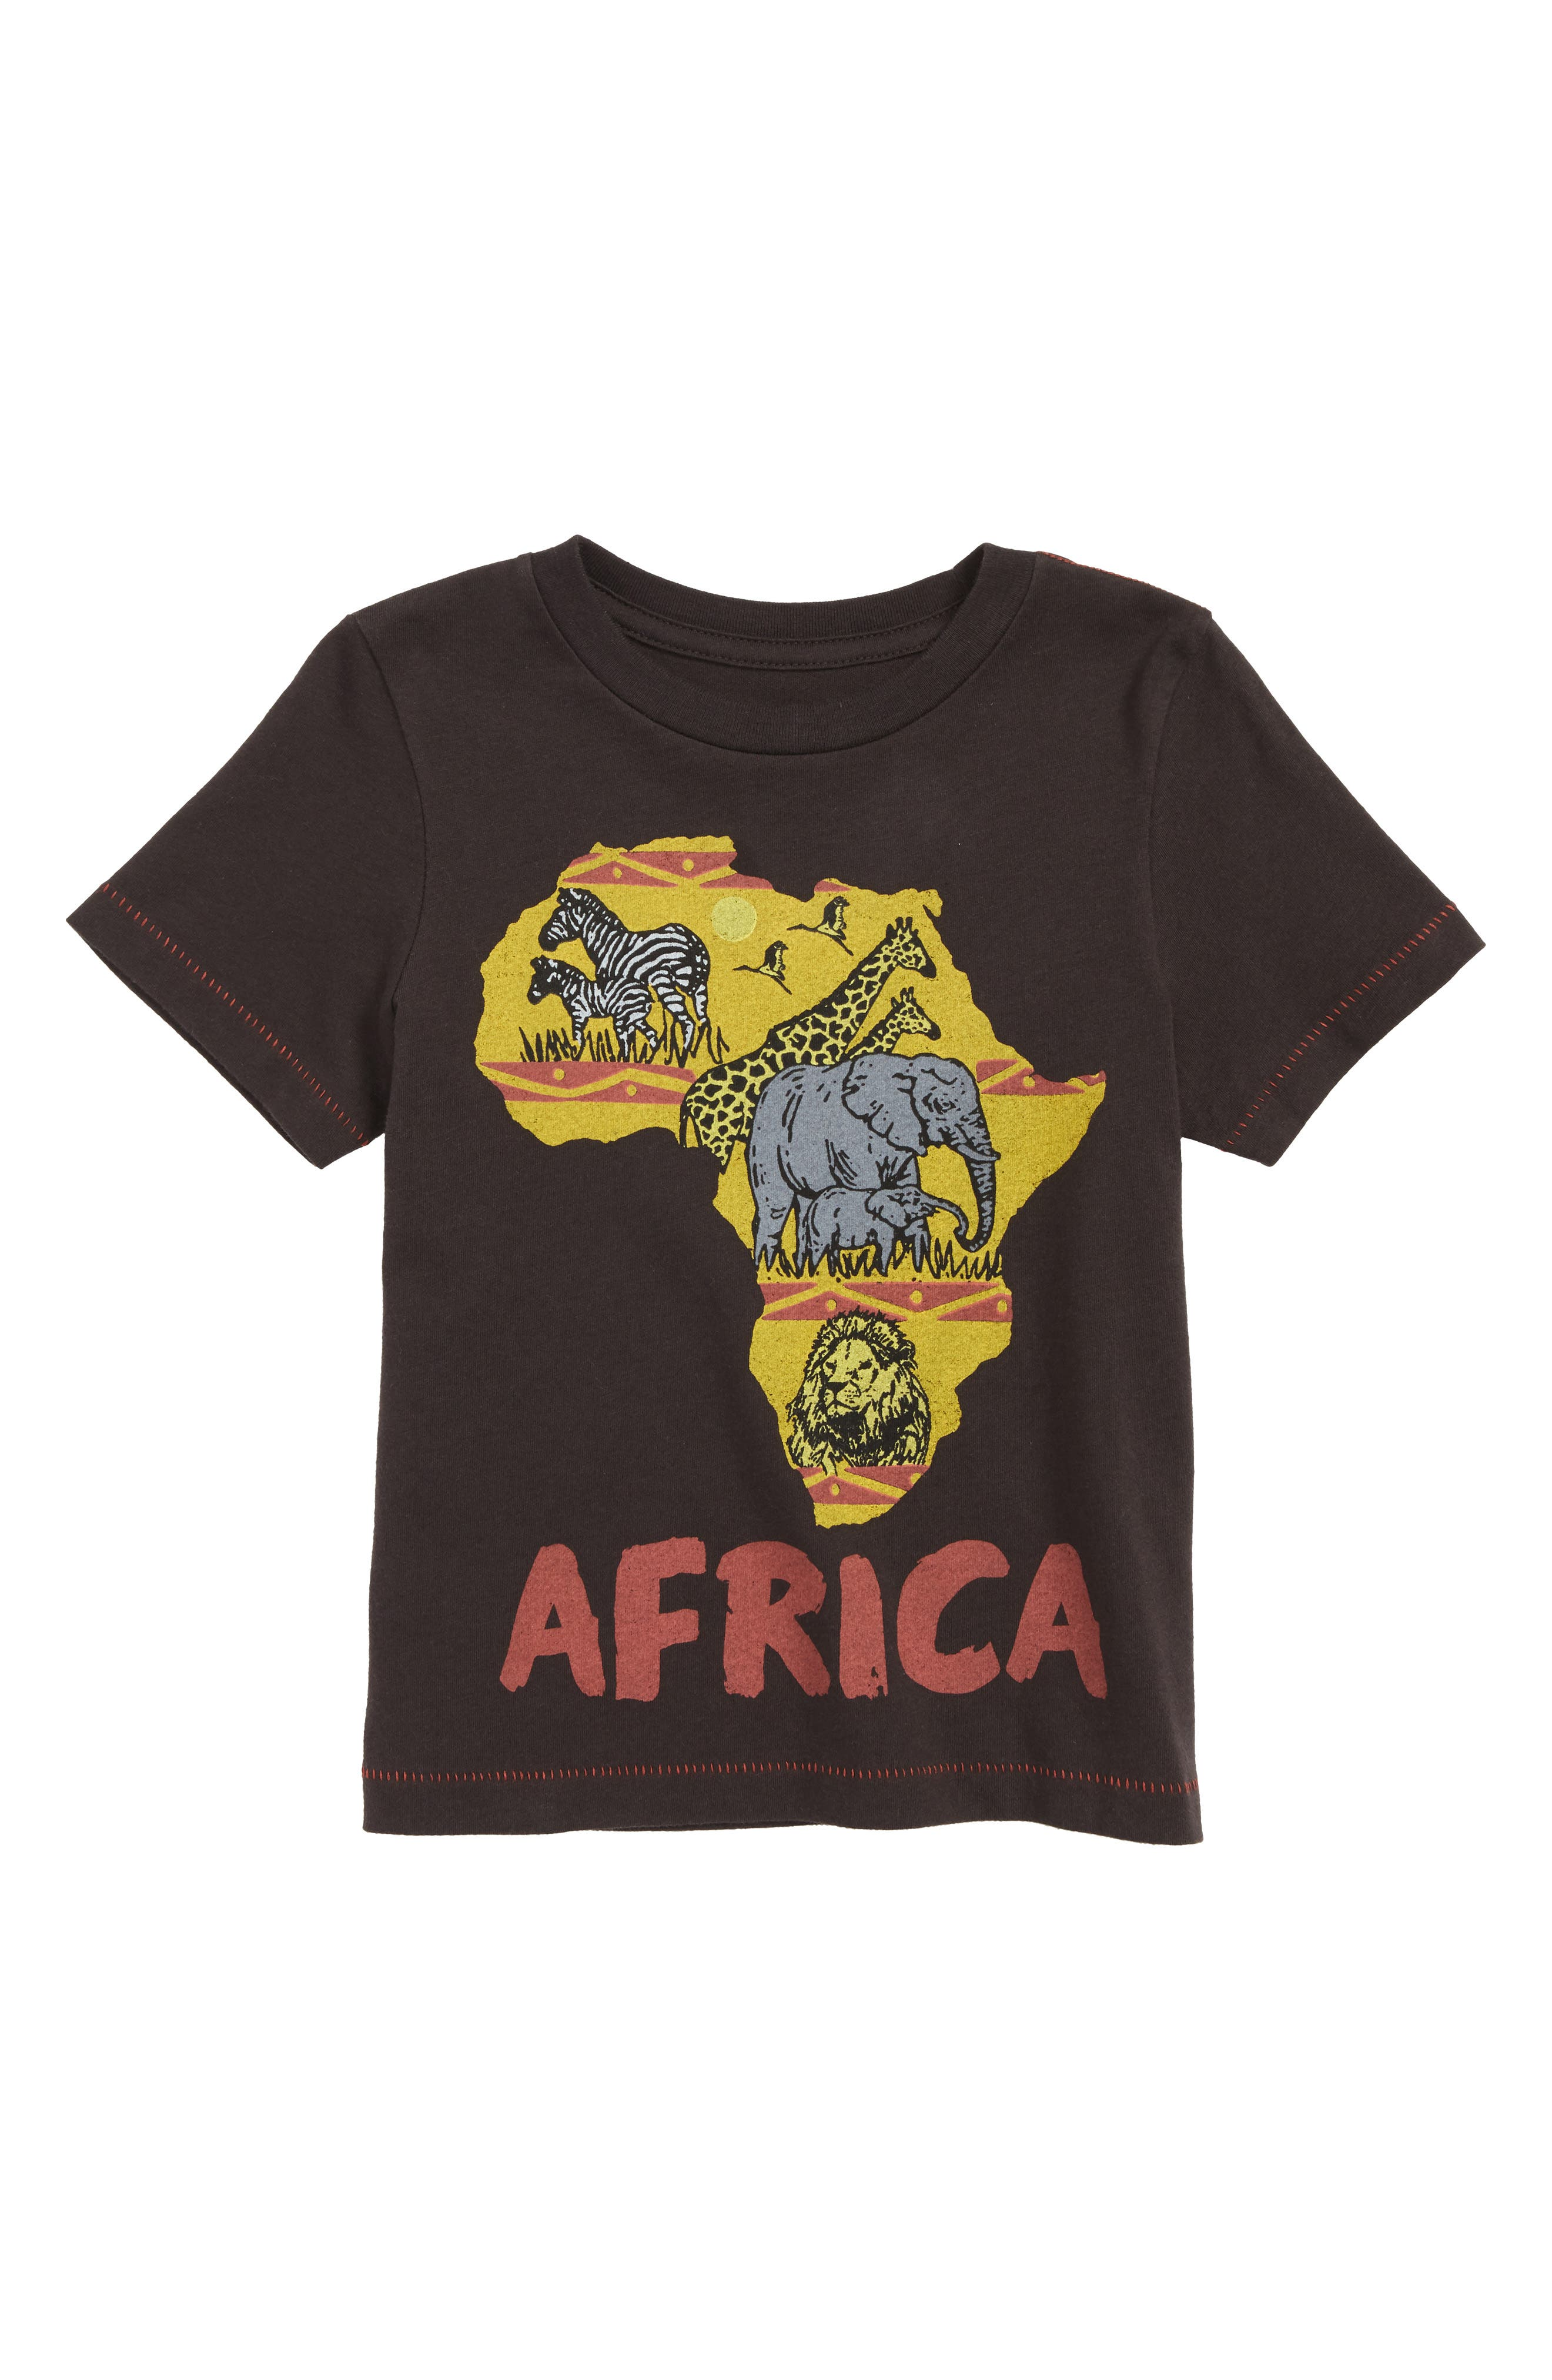 Africa Graphic T-Shirt,                             Main thumbnail 1, color,                             001